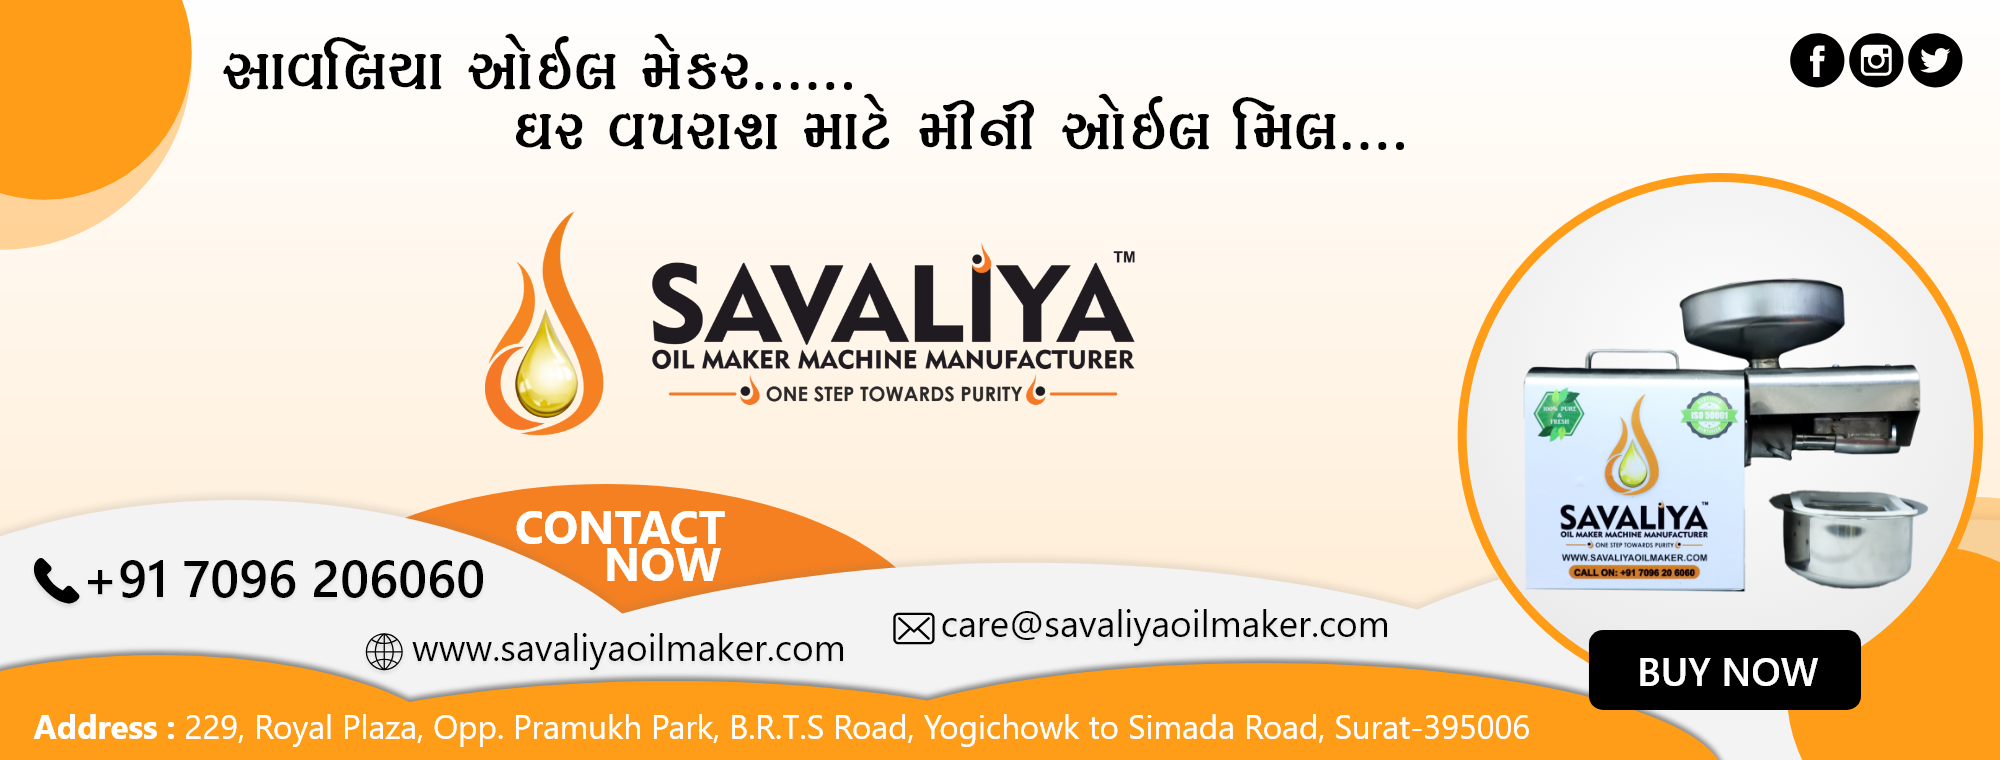 Savaliya Oil Maker Machine